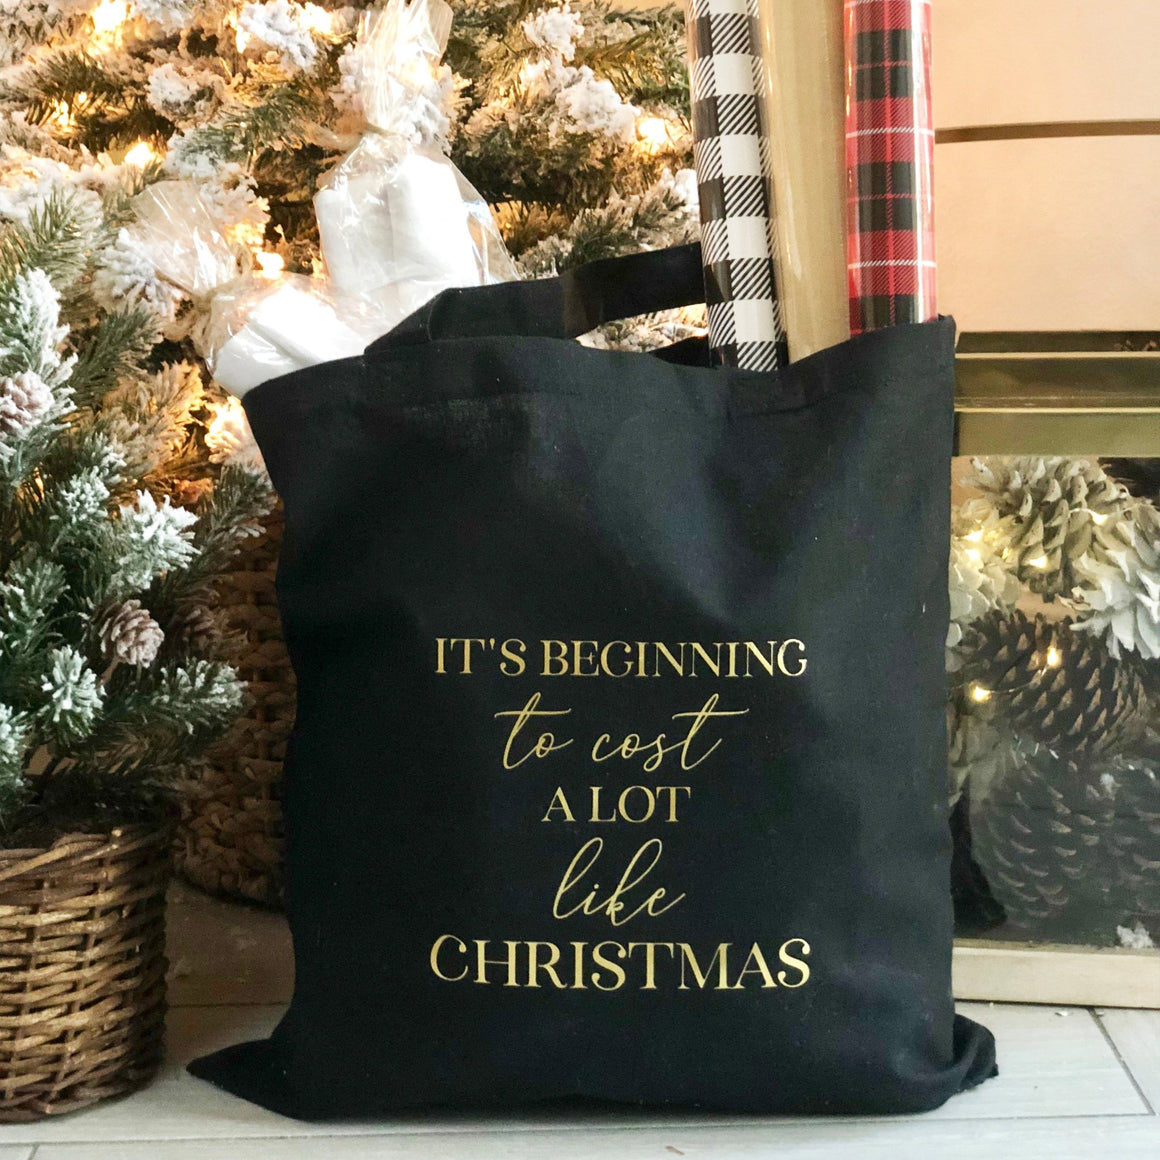 It's Beginning to Cost a Lot Like Christmas Gold Foil Tote - Pretty Collected